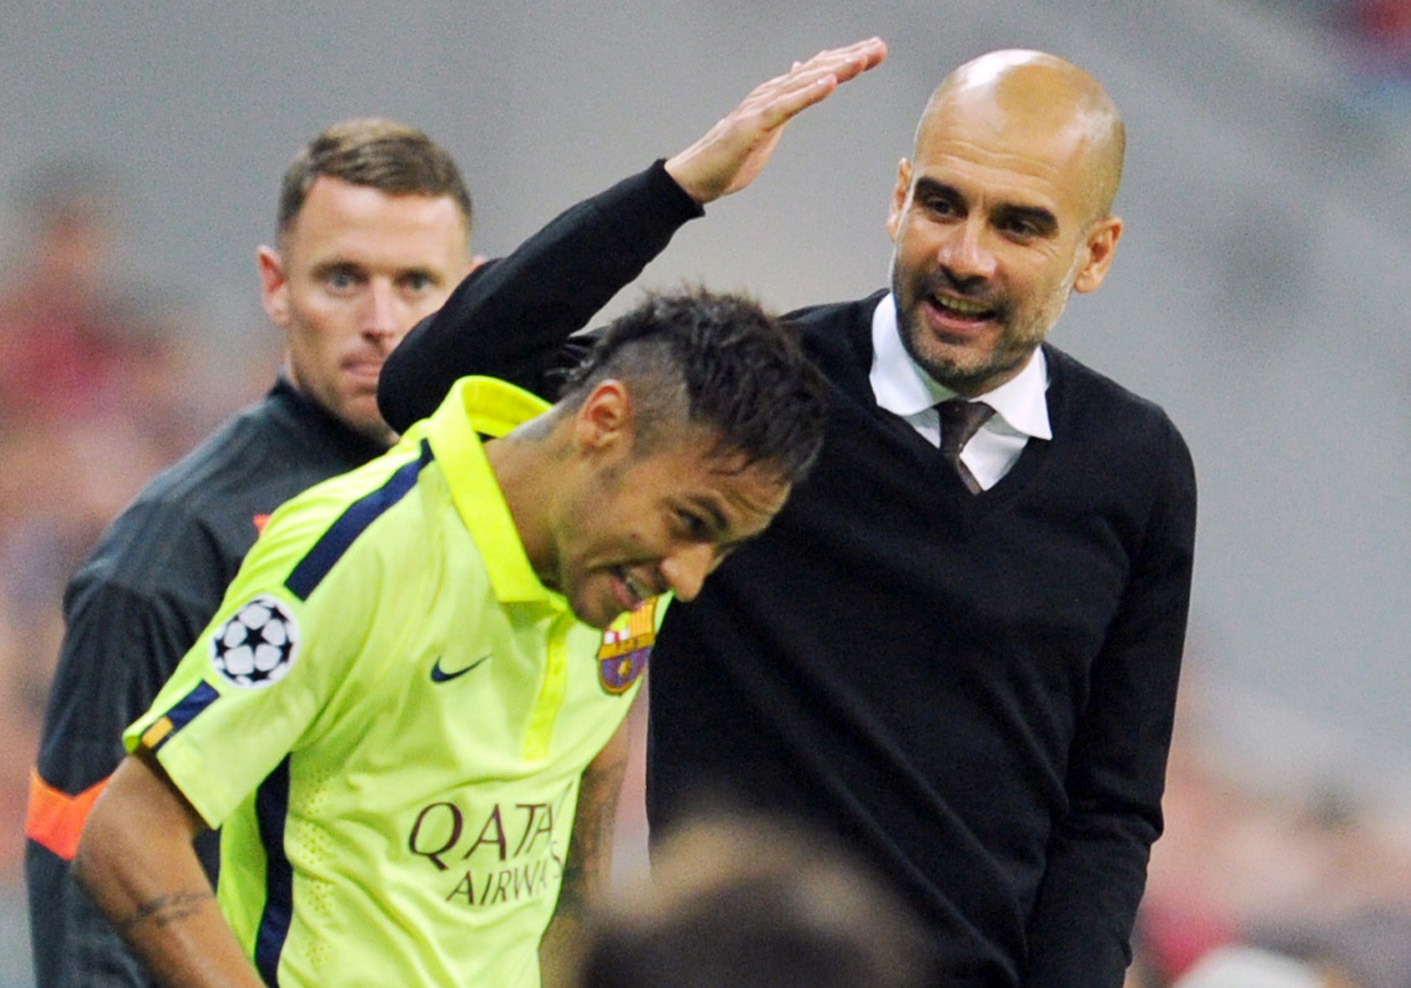 Then-Bayern boss Guardiola jokes with Neymar. Image PA